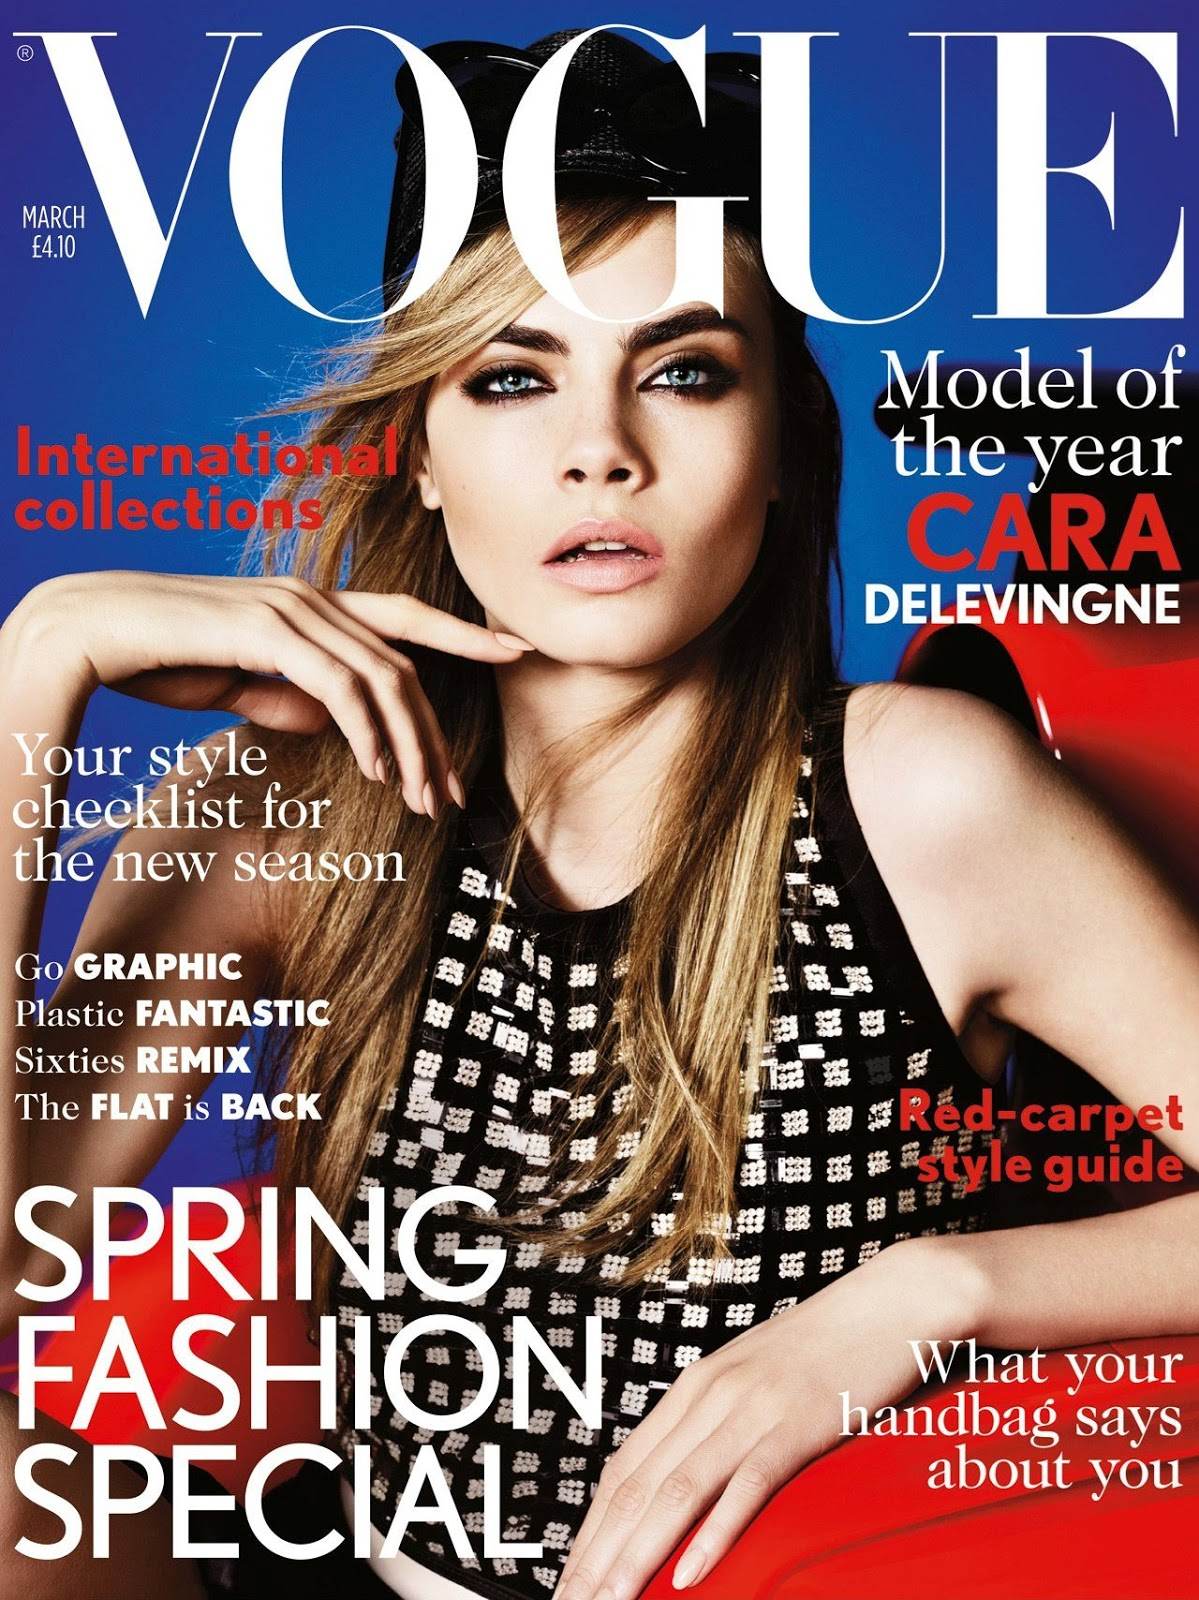 Vogue-UK-March-2013-Cara-Delevingne-Cover